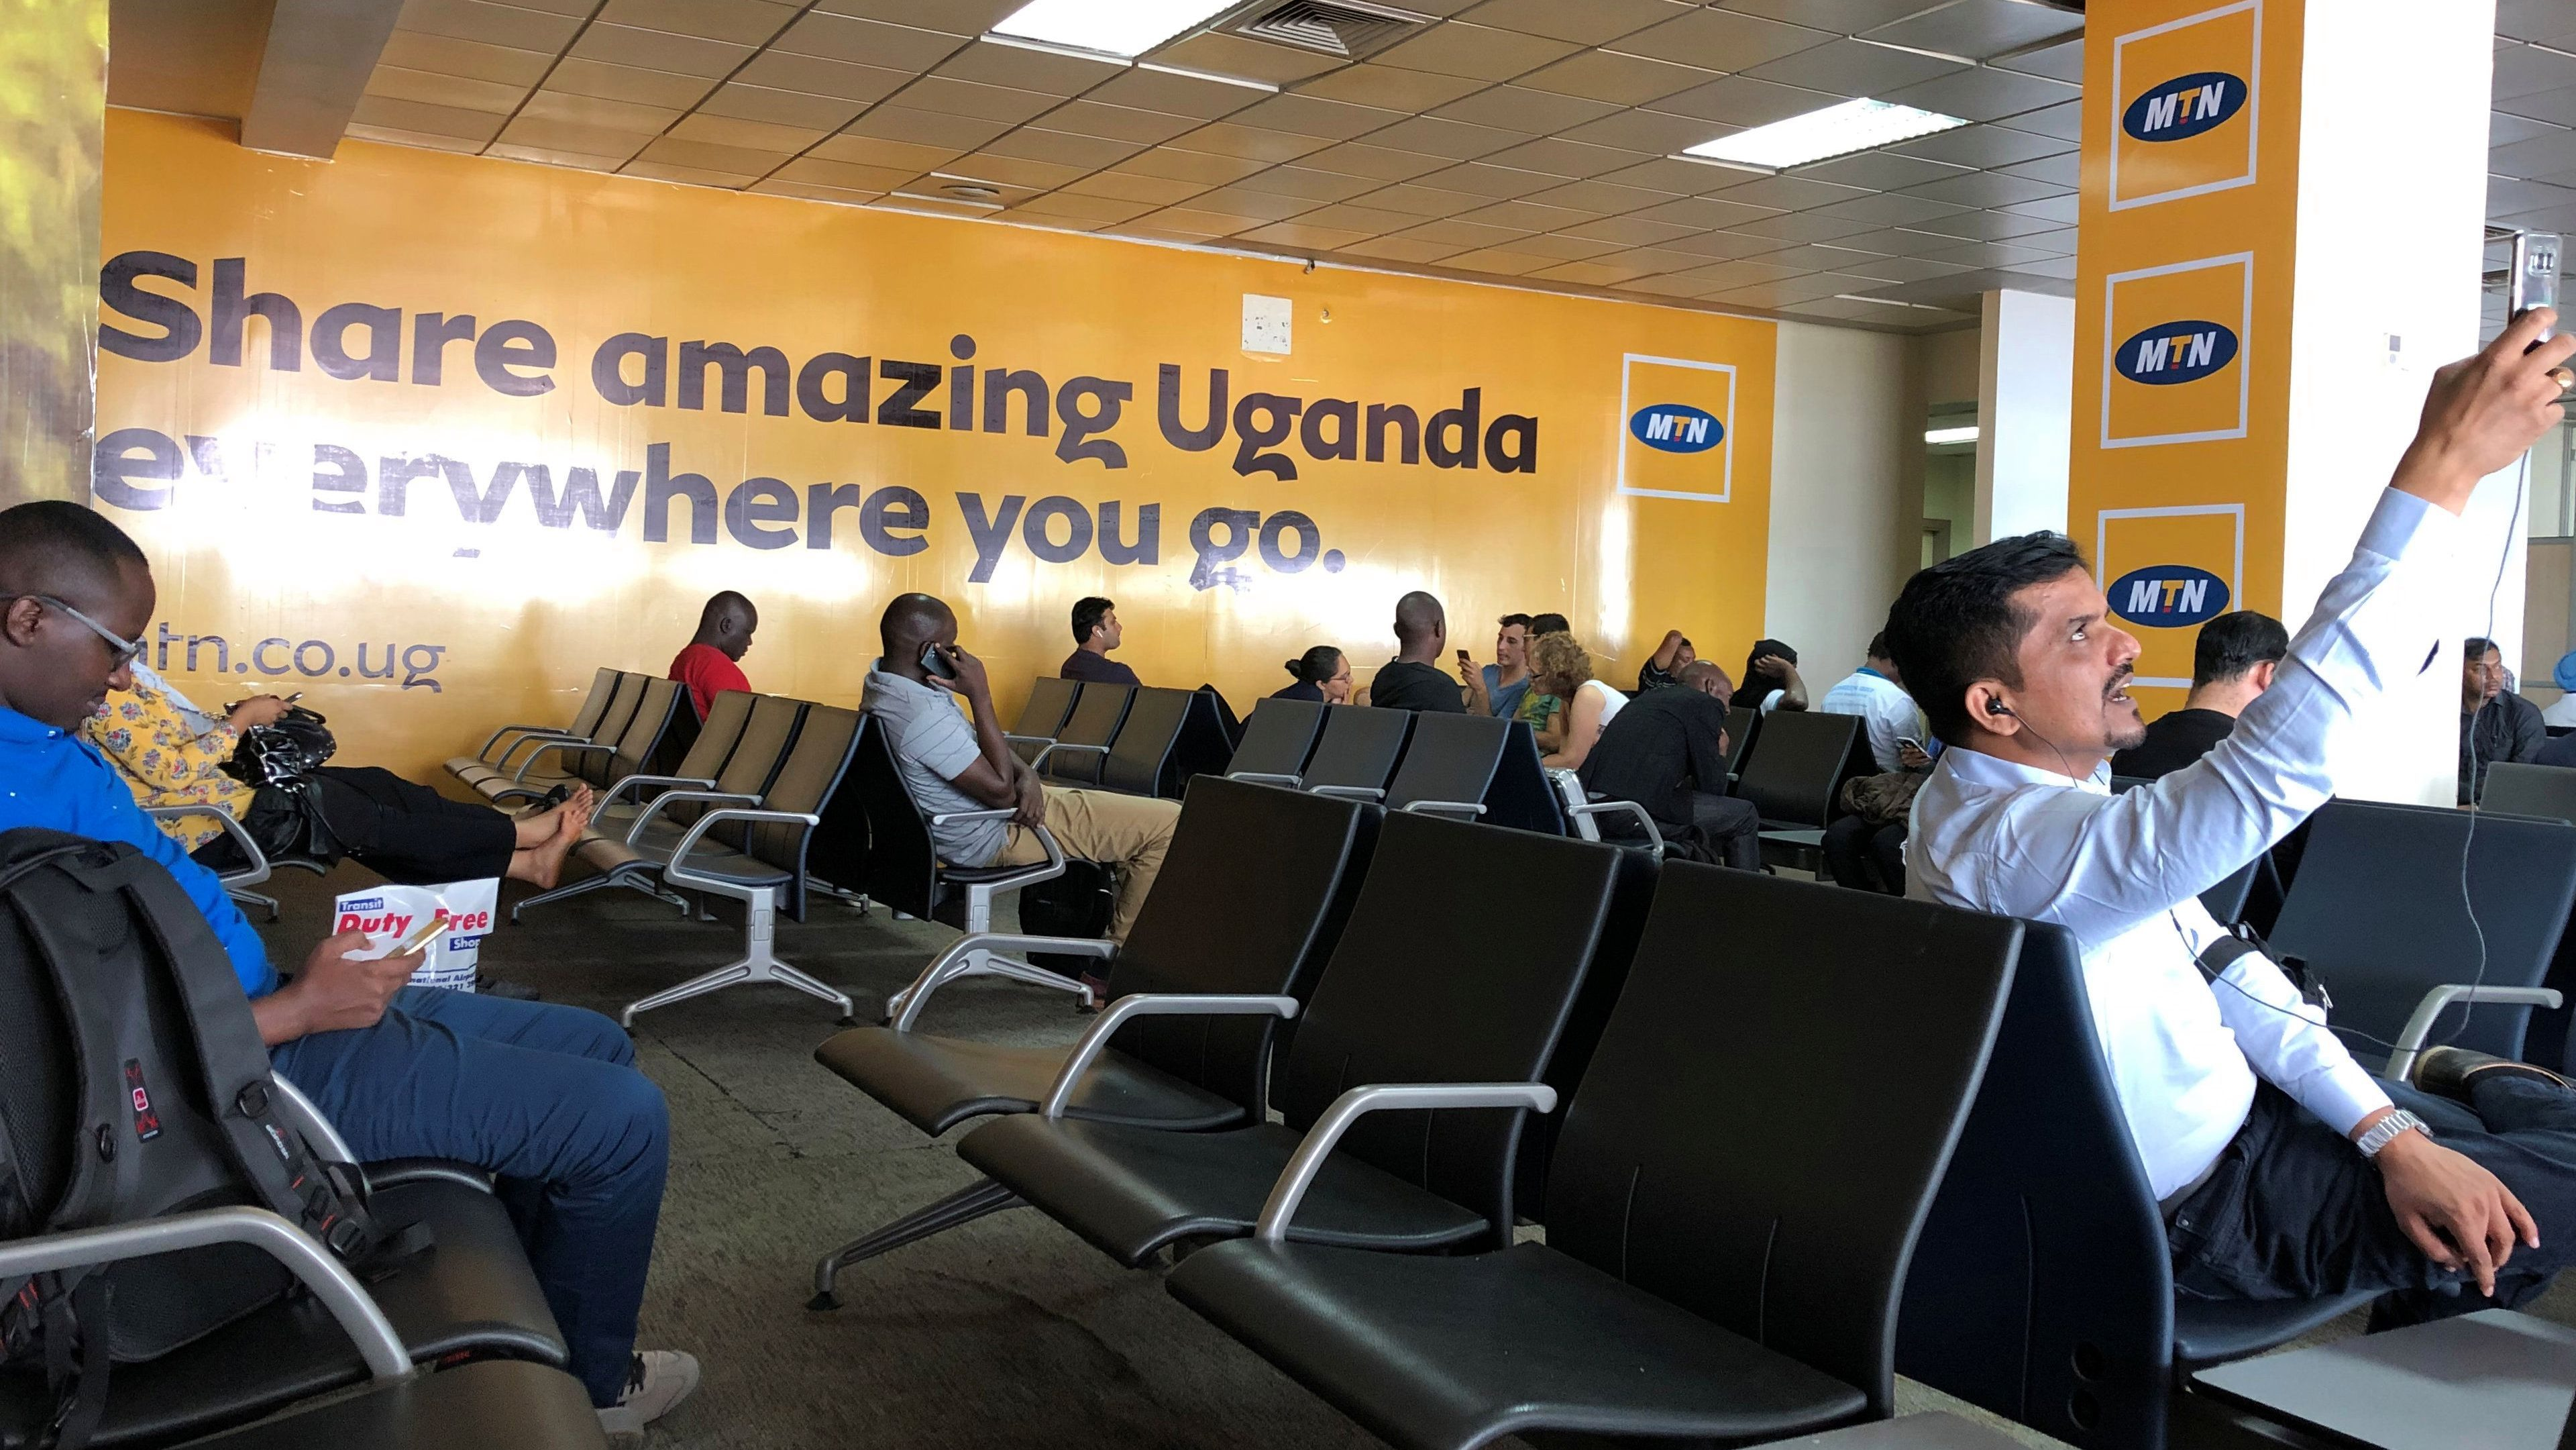 In under a month, Uganda has deported four top MTN executives, including  the CEO